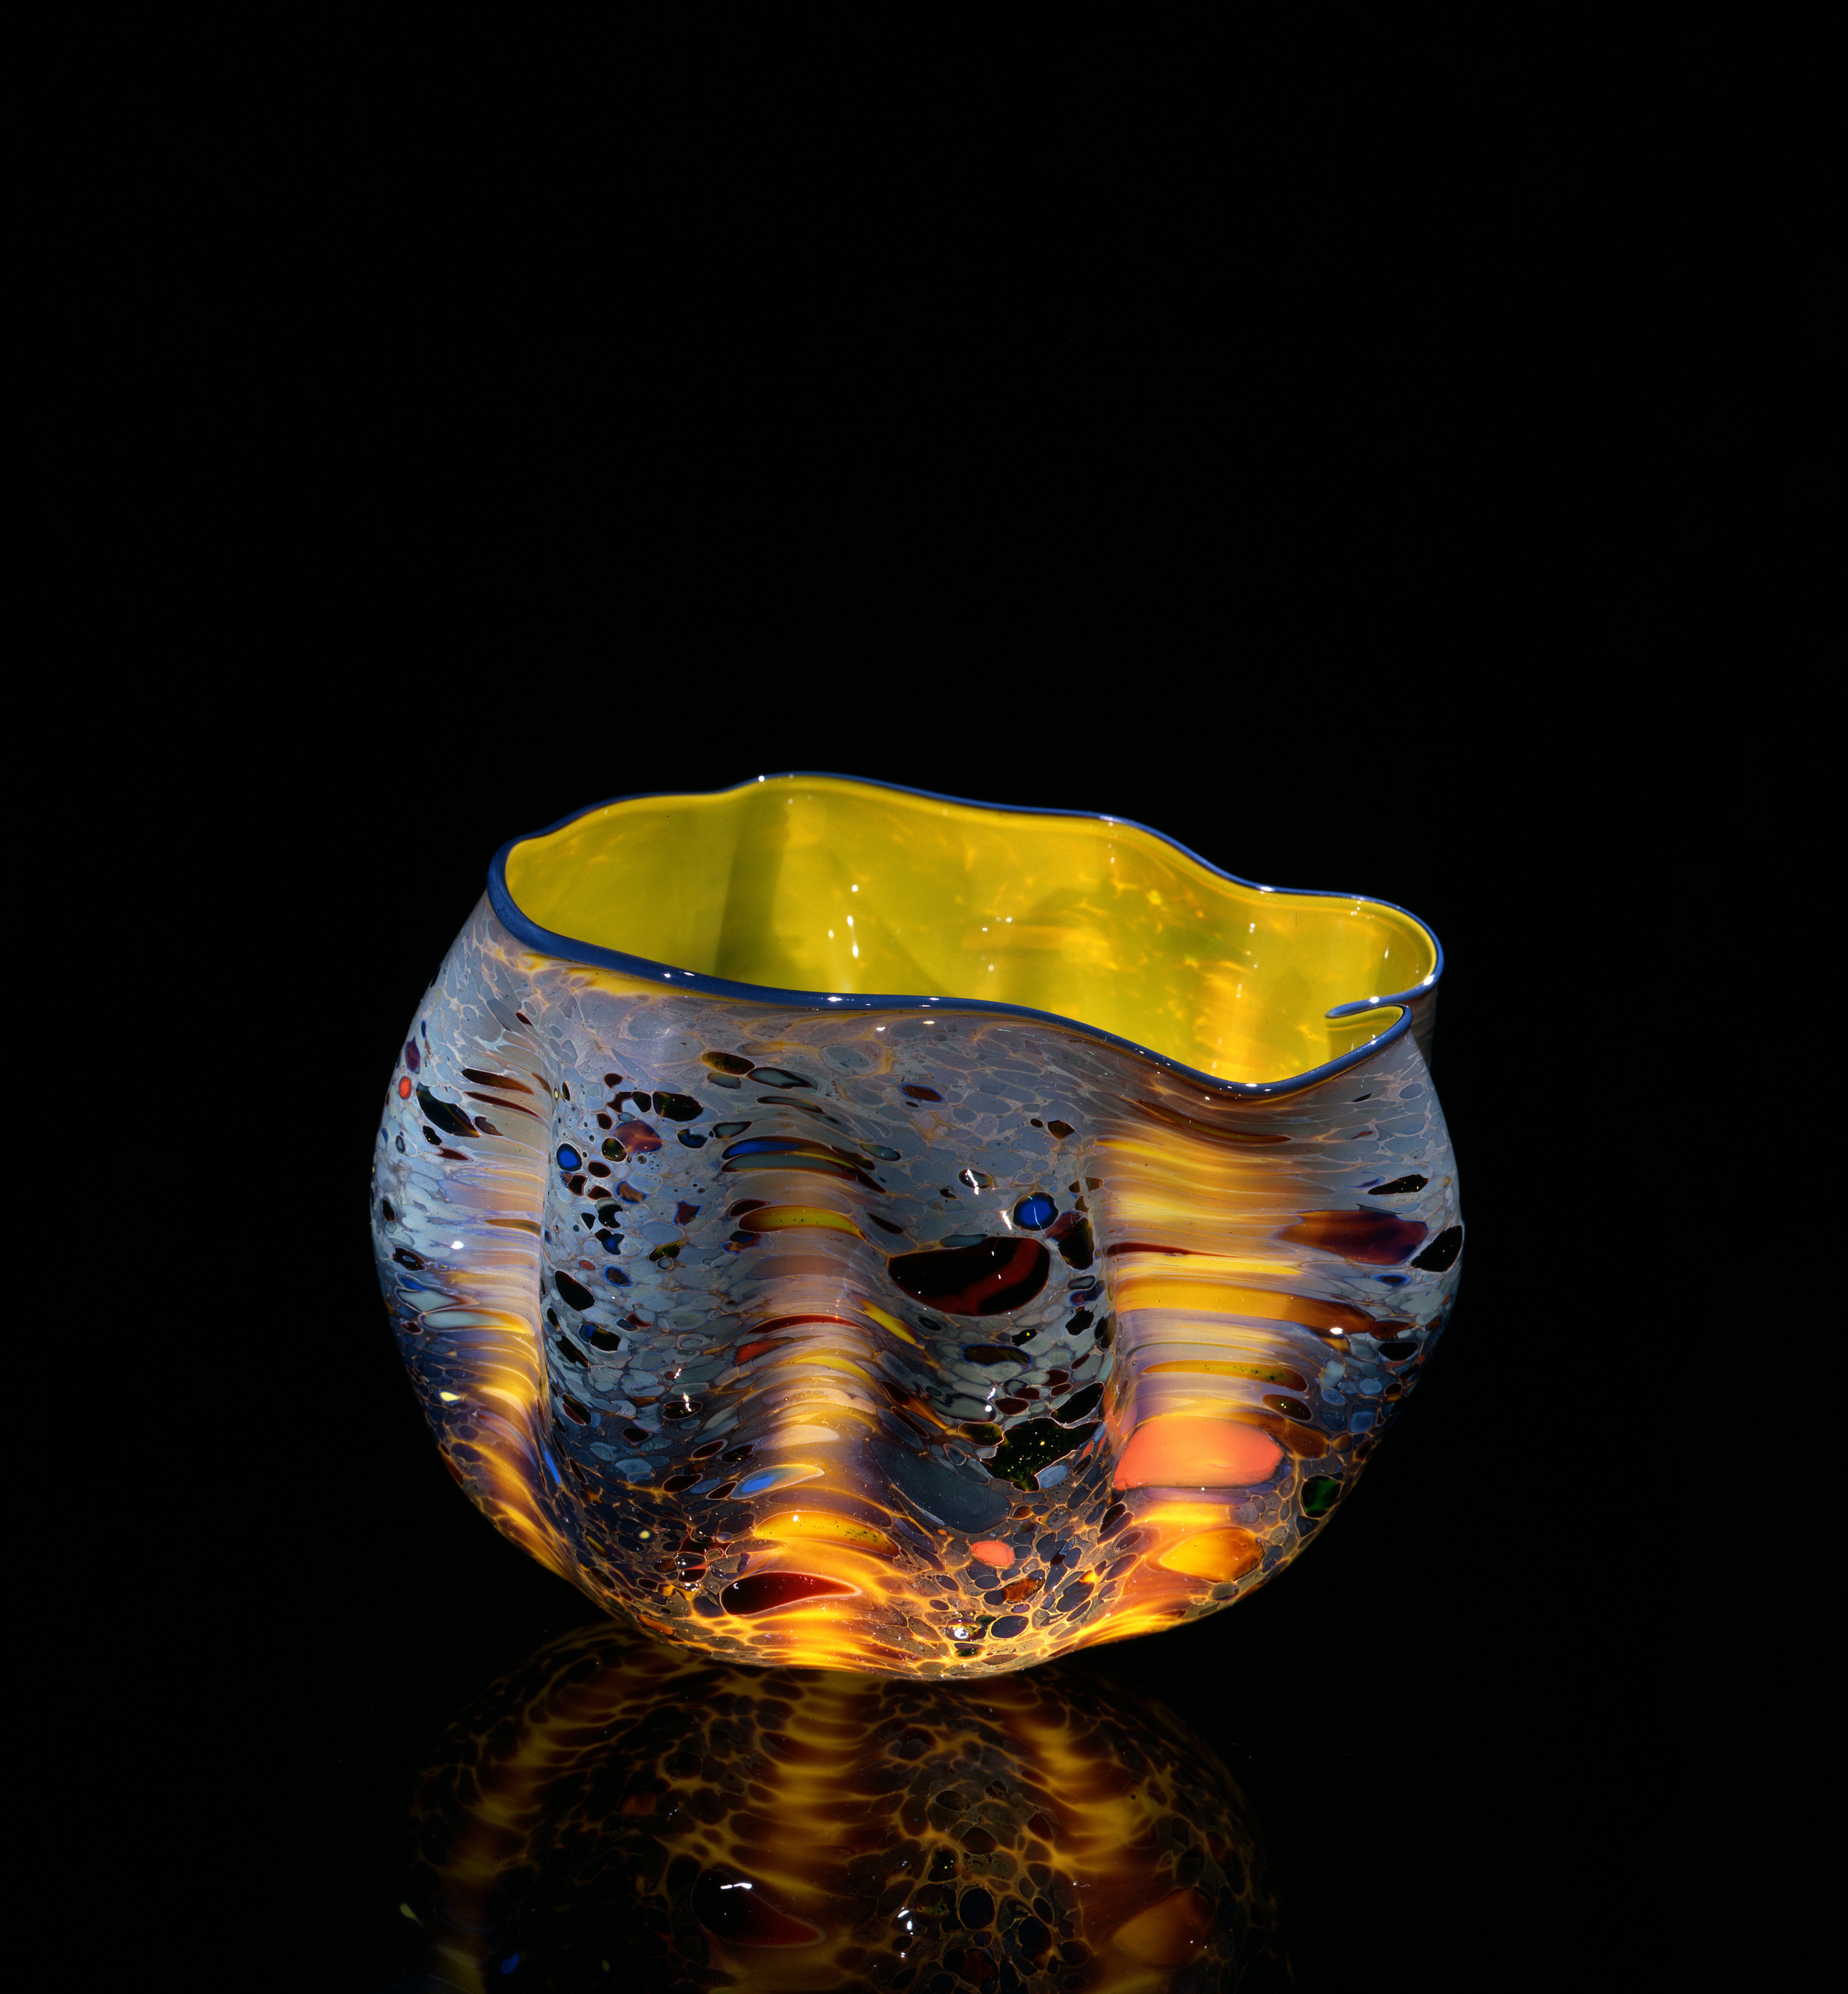 Dale Chihuly, Aureolin Yellow Macchia with Armenian Blue Lip Wrap (1981, glass, 5 x 7 x 7 inches), DC.99